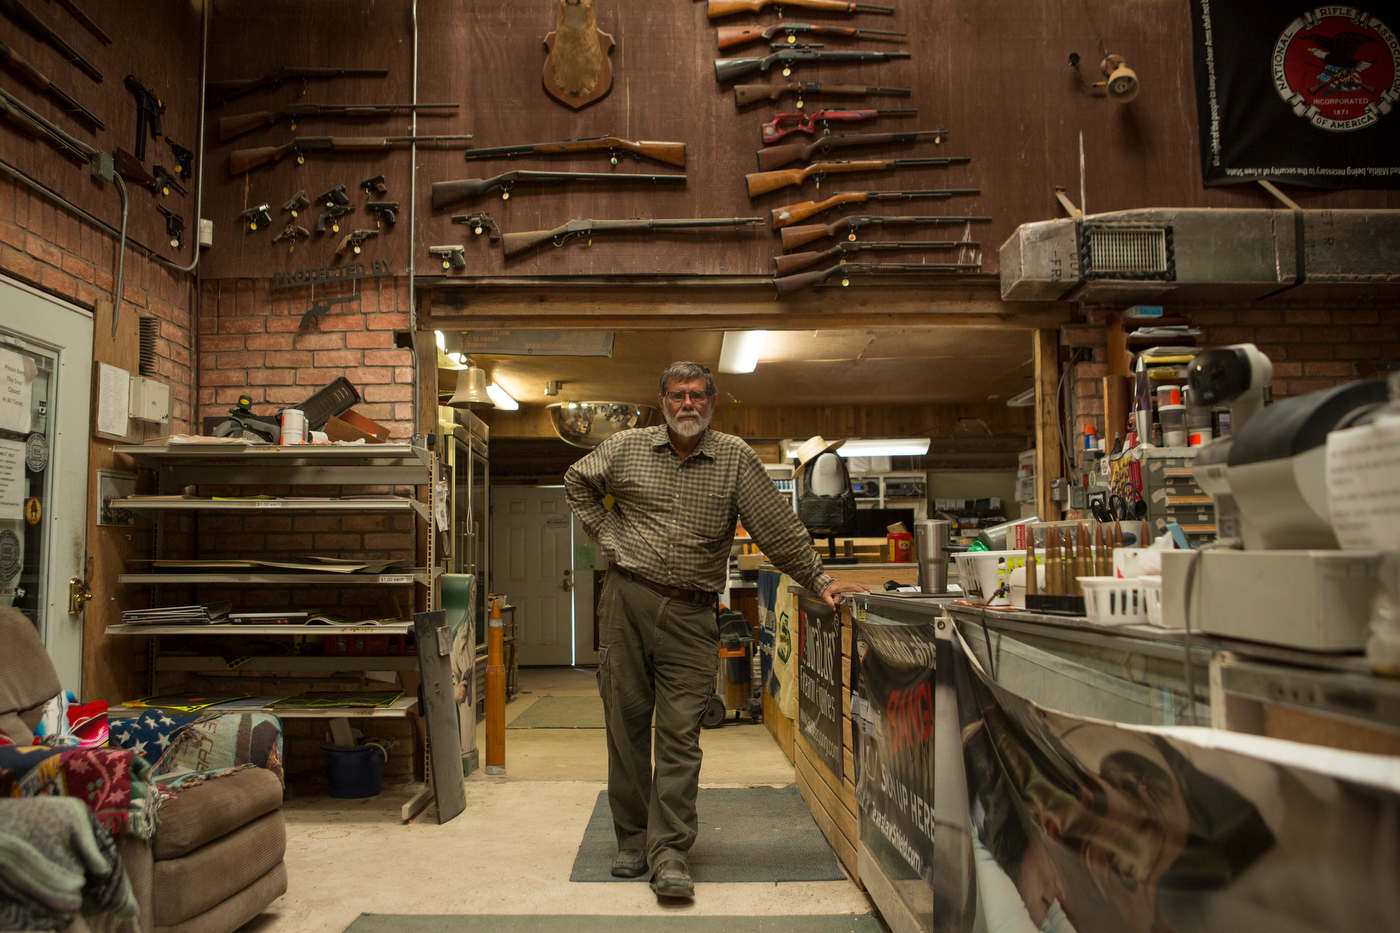 Larry Massey, owner of the Massey Gun Range, located near the Rio Grande.